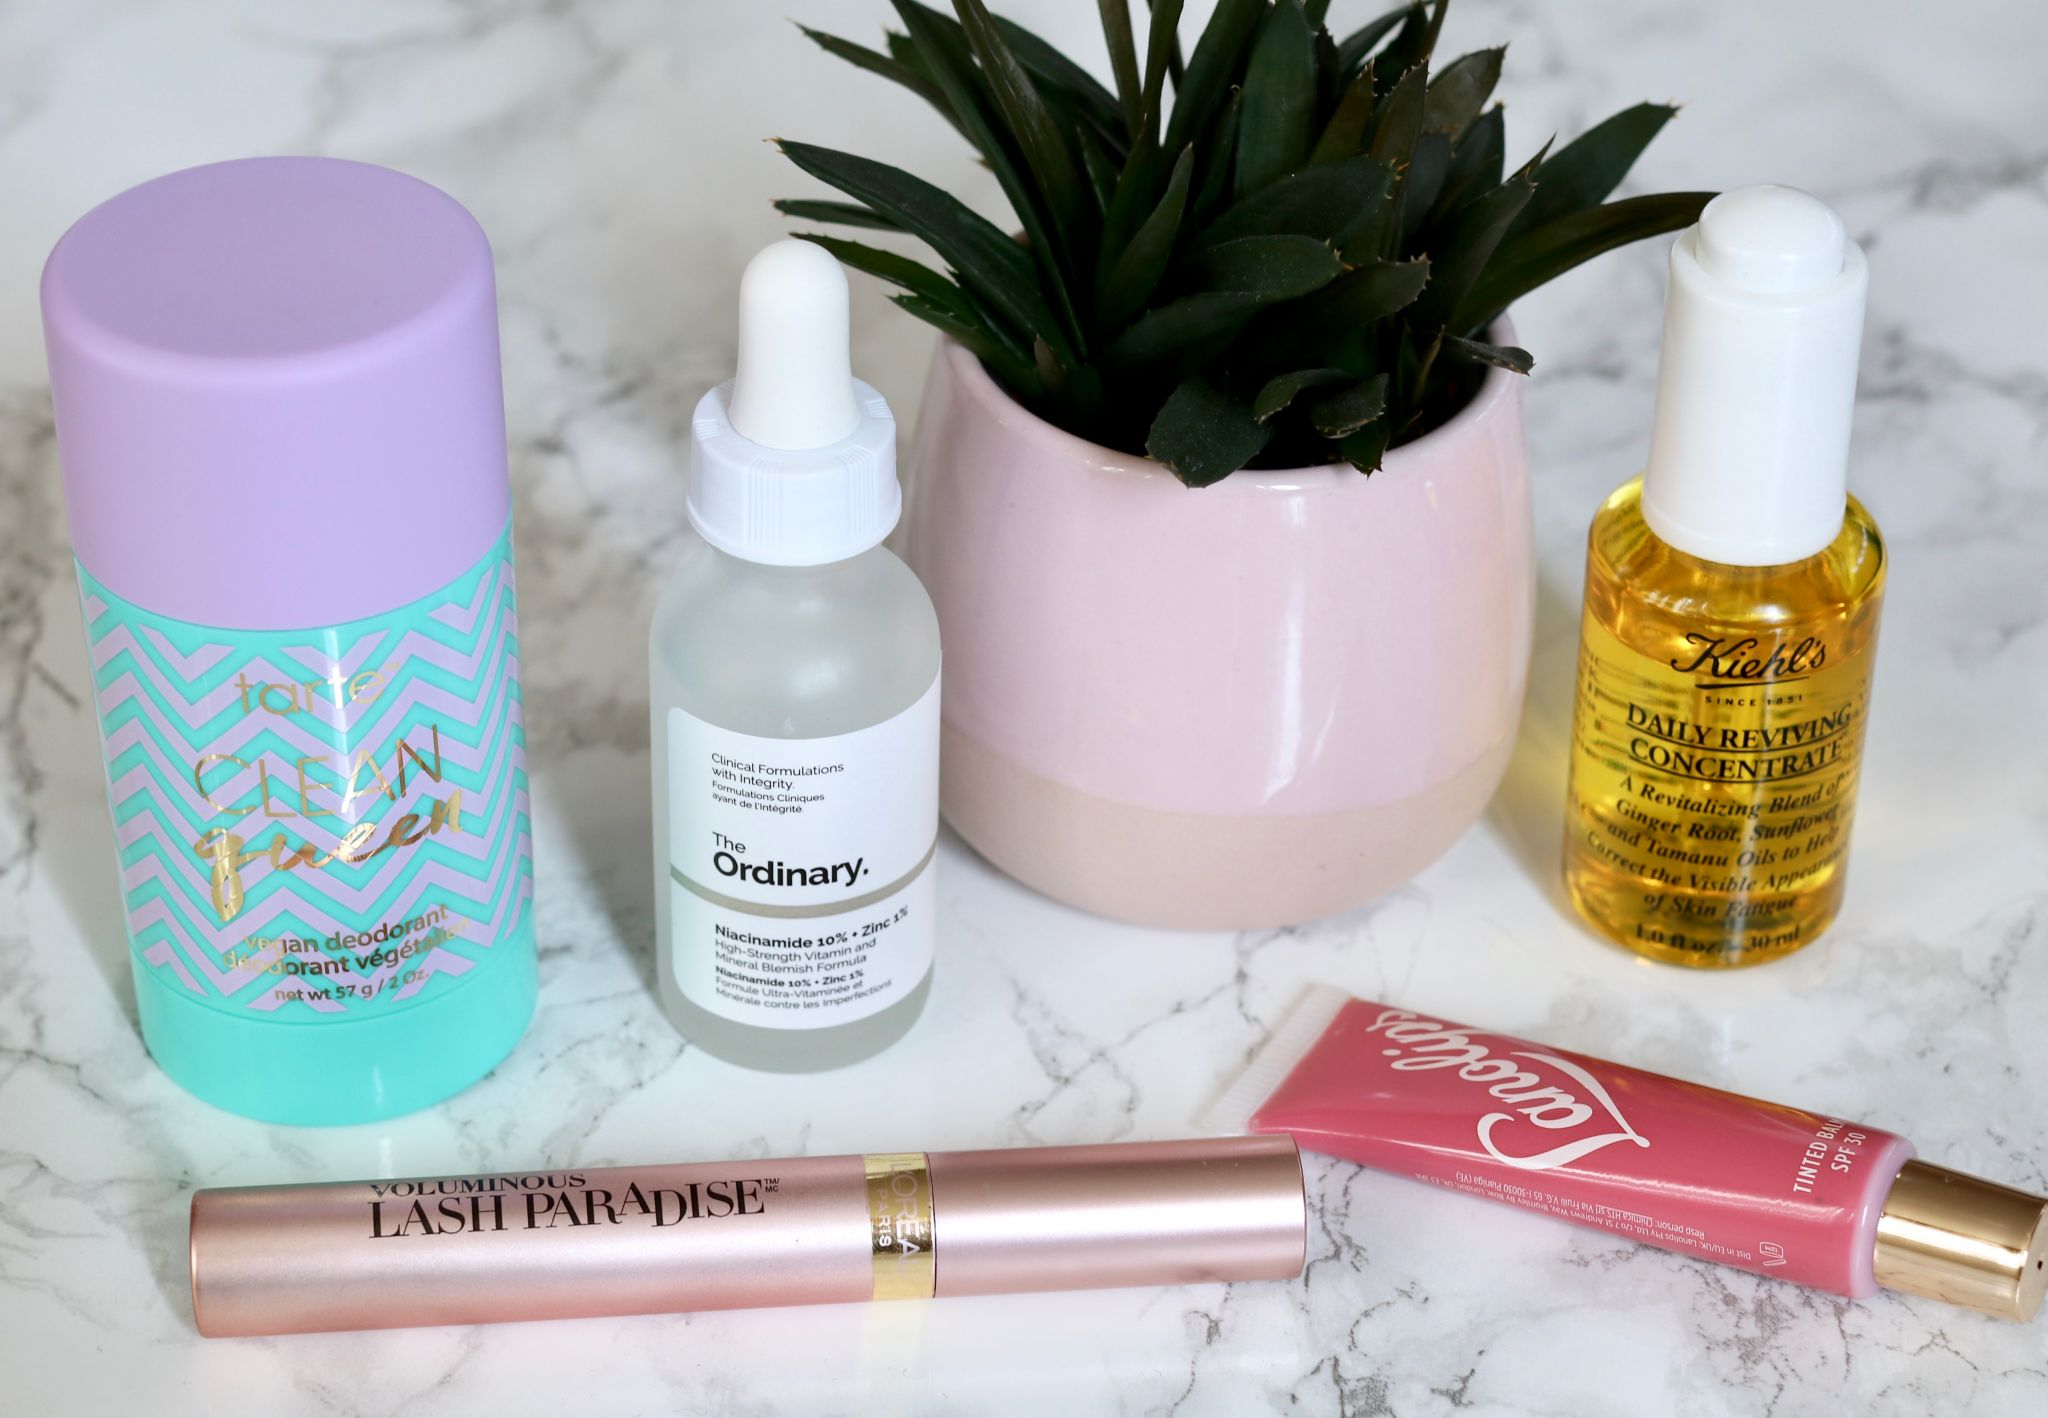 5 products to try kiehl's daily reviving concentrate oil Lanolips tinted lip balm rhubarb The ordinary niacinamide and zinc loreal lash paradise Tarte clean queen deodorant